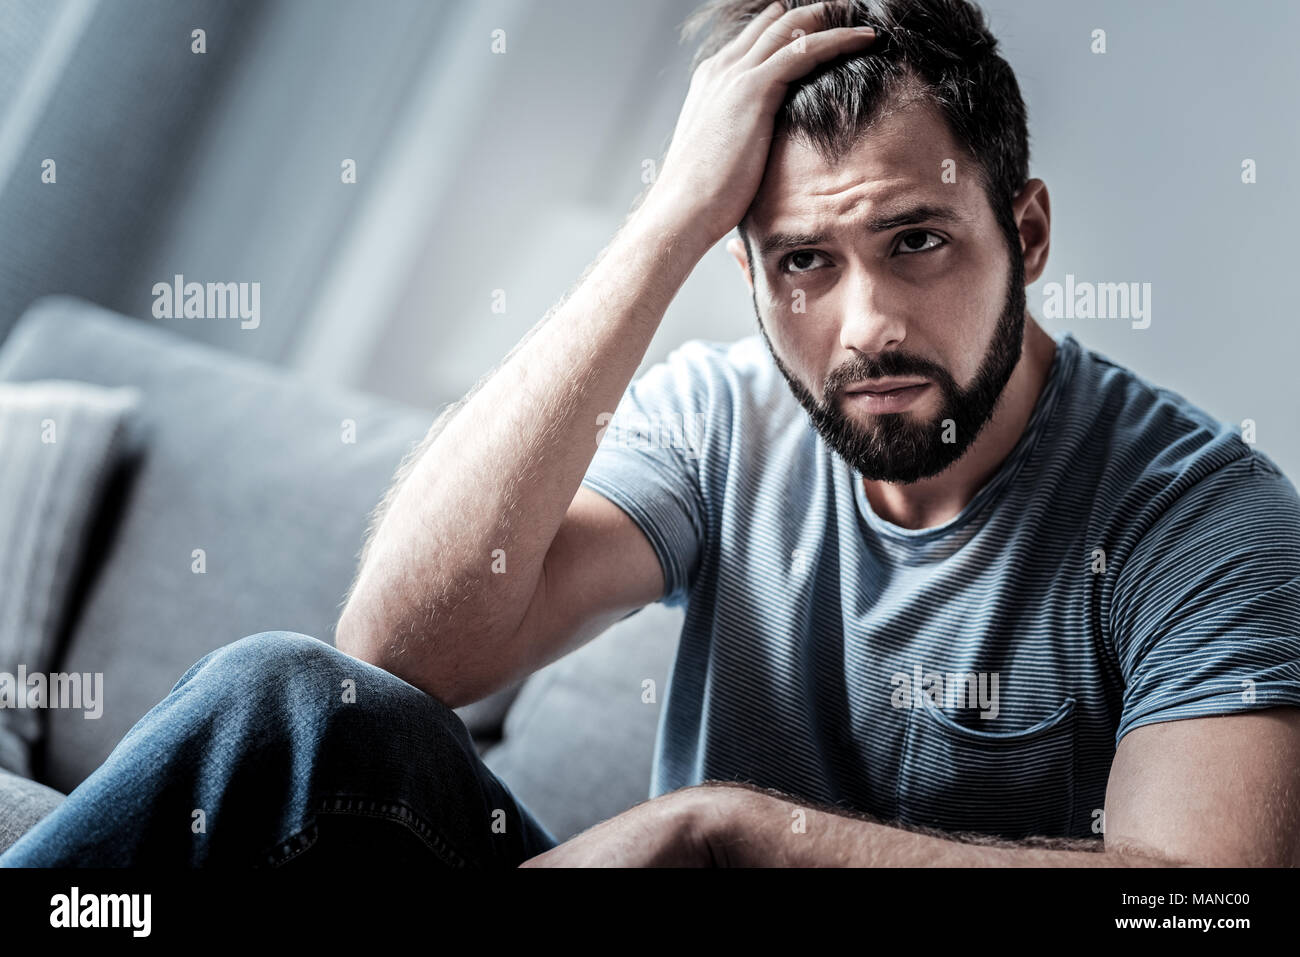 Sad young man being in a difficult situation - Stock Image